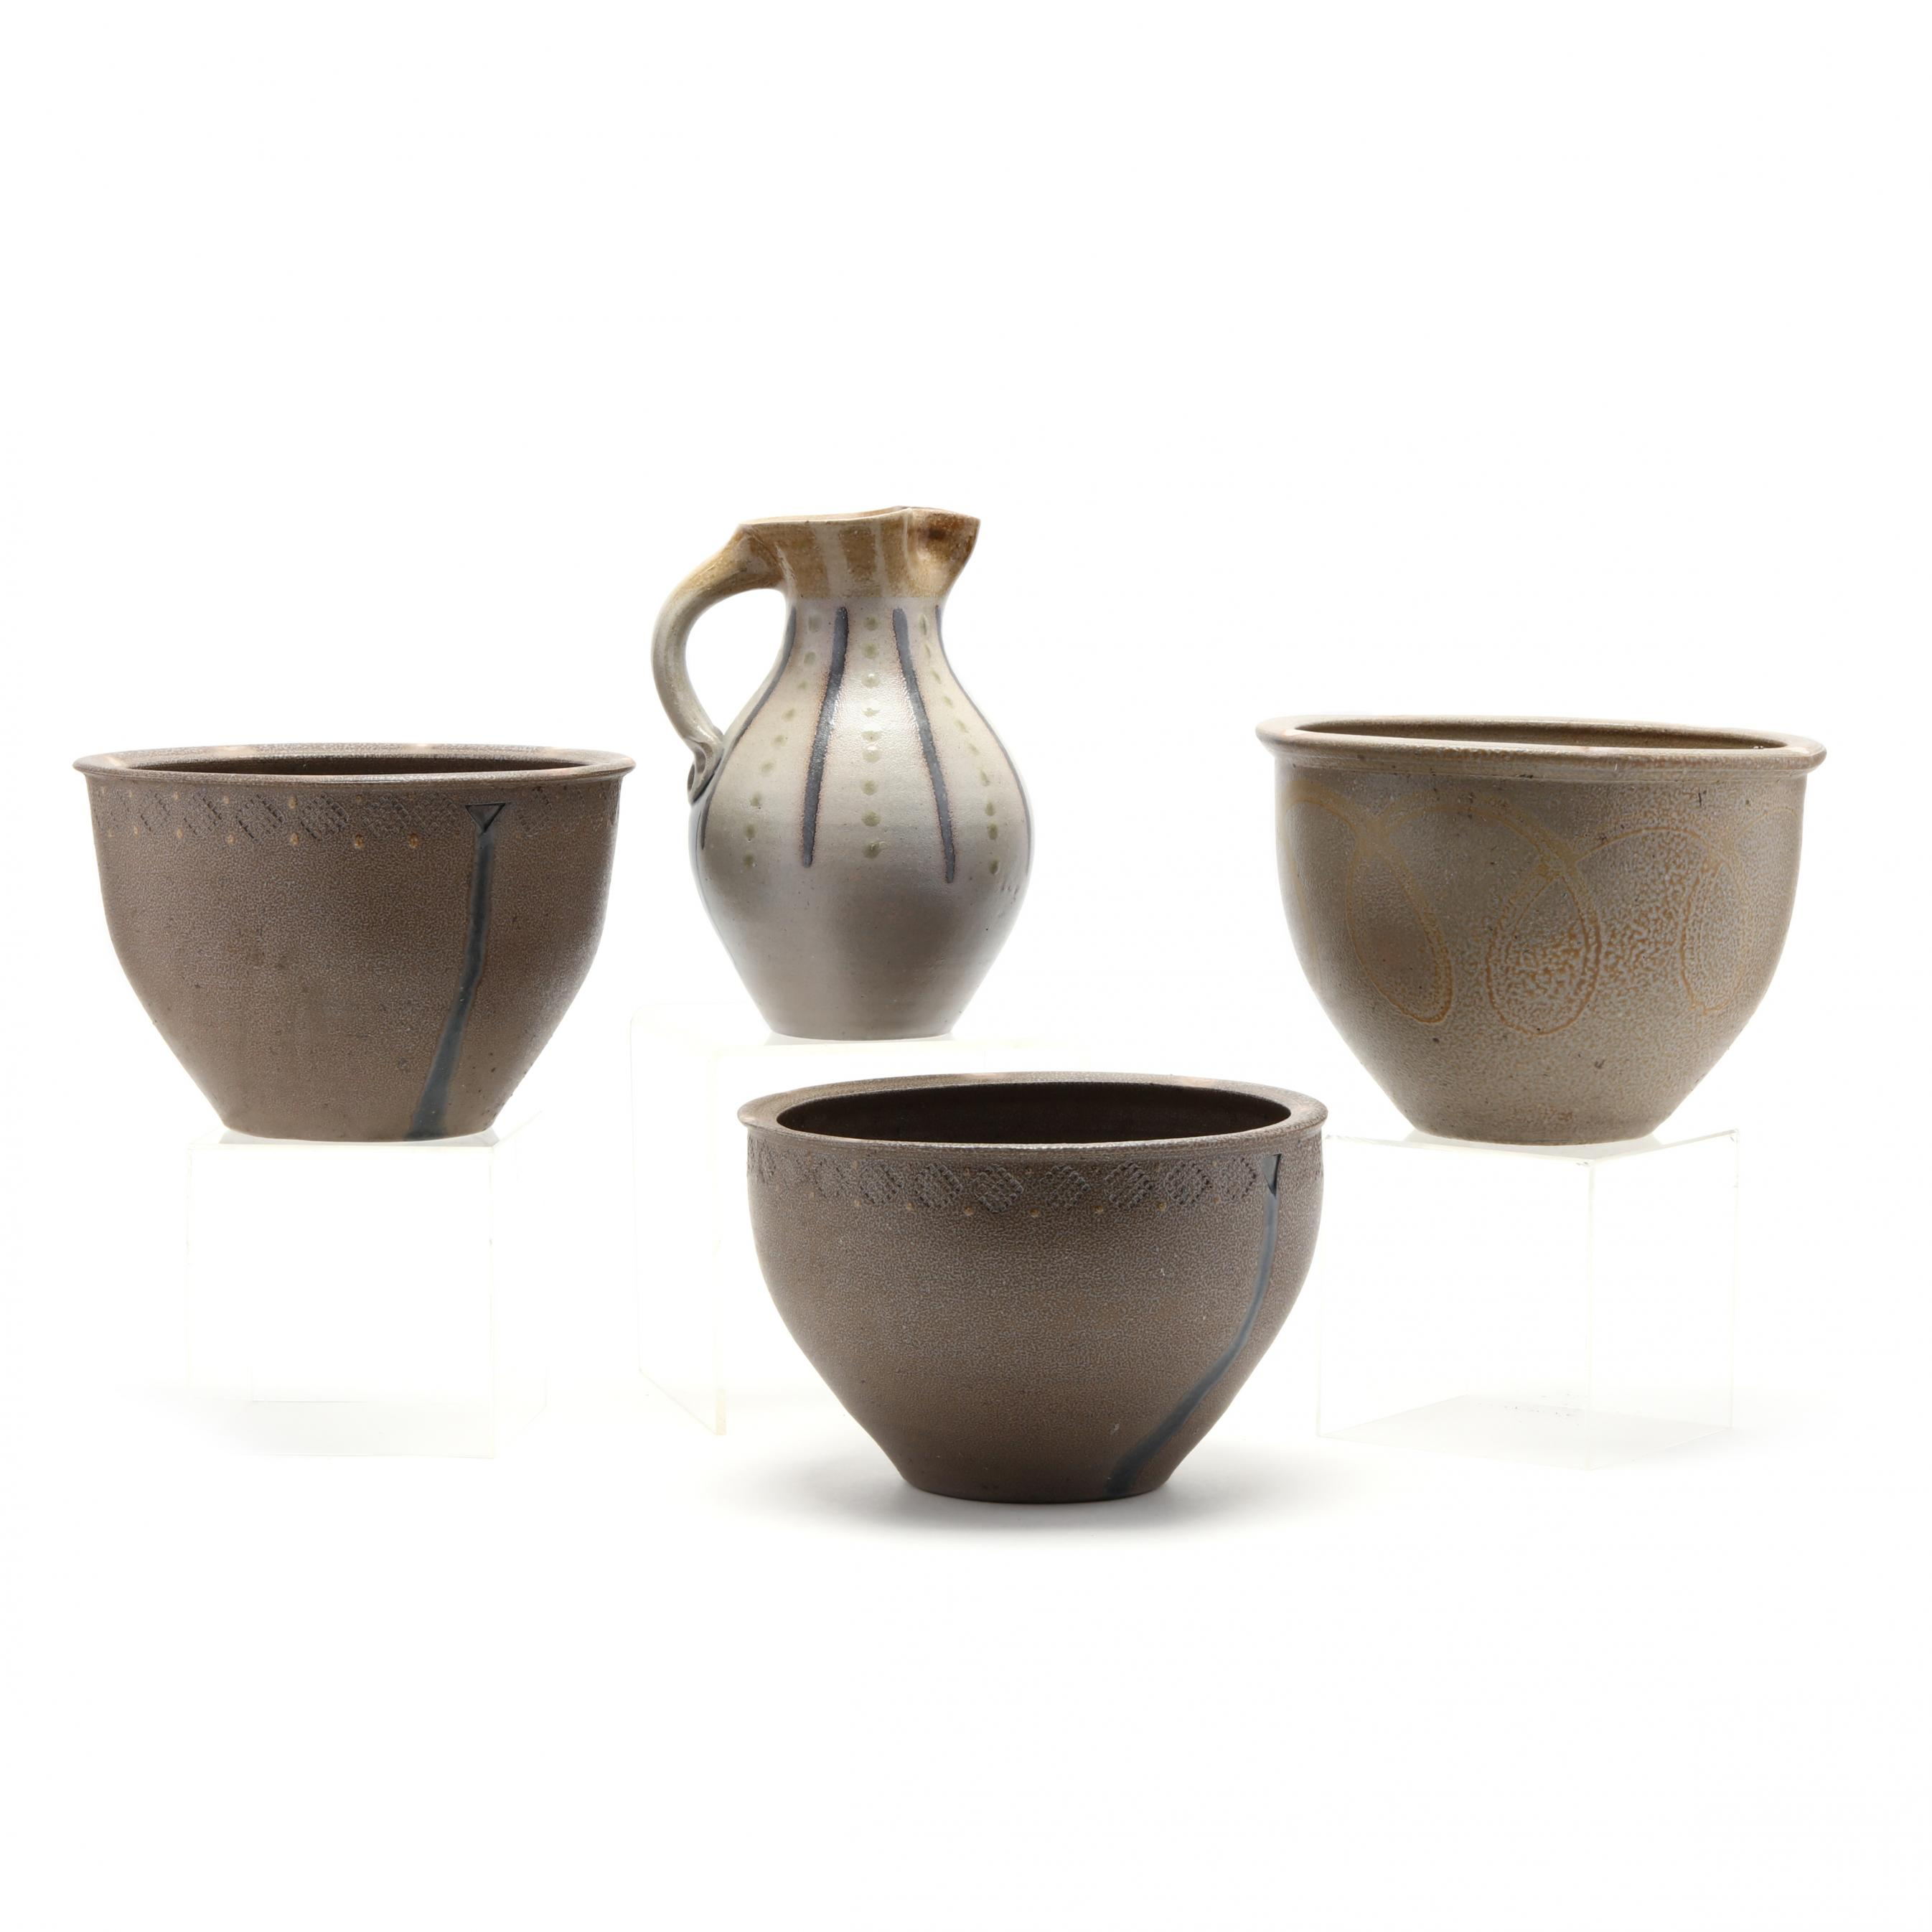 four-nc-pottery-items-by-mark-hewitt-pottery